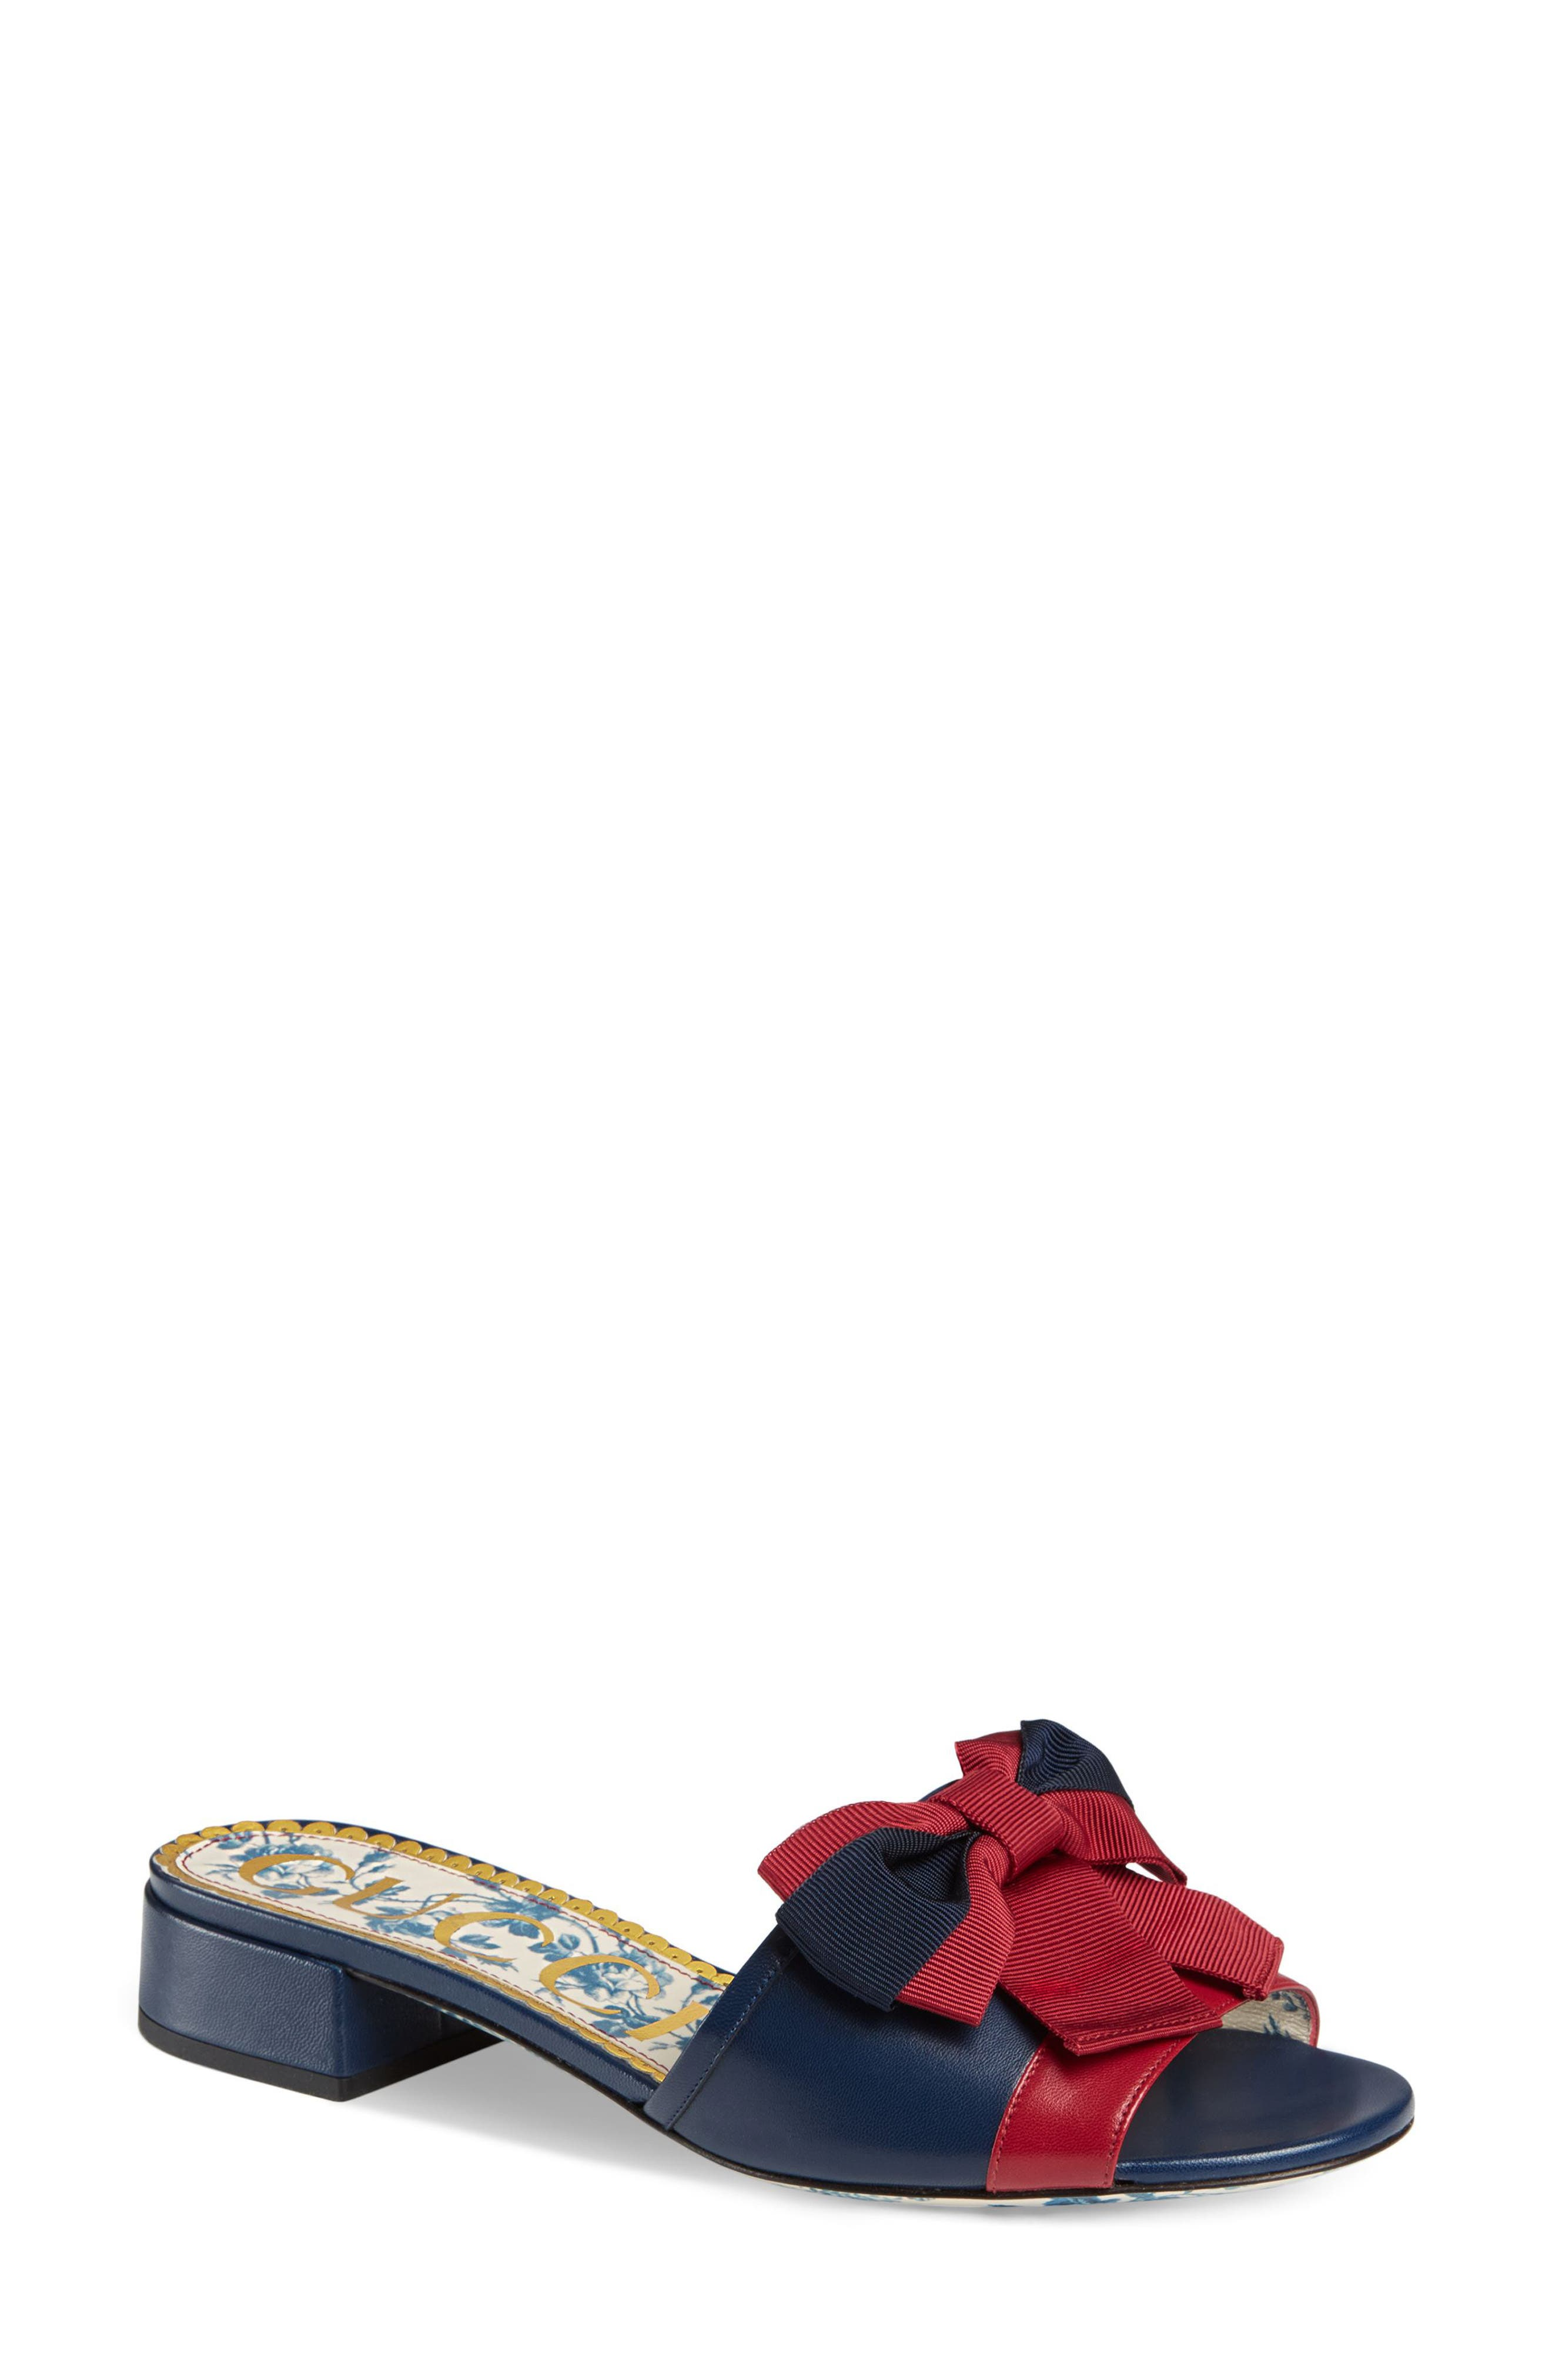 GUCCI Sackville Bow Sandal, Main, color, BLUE/ RED